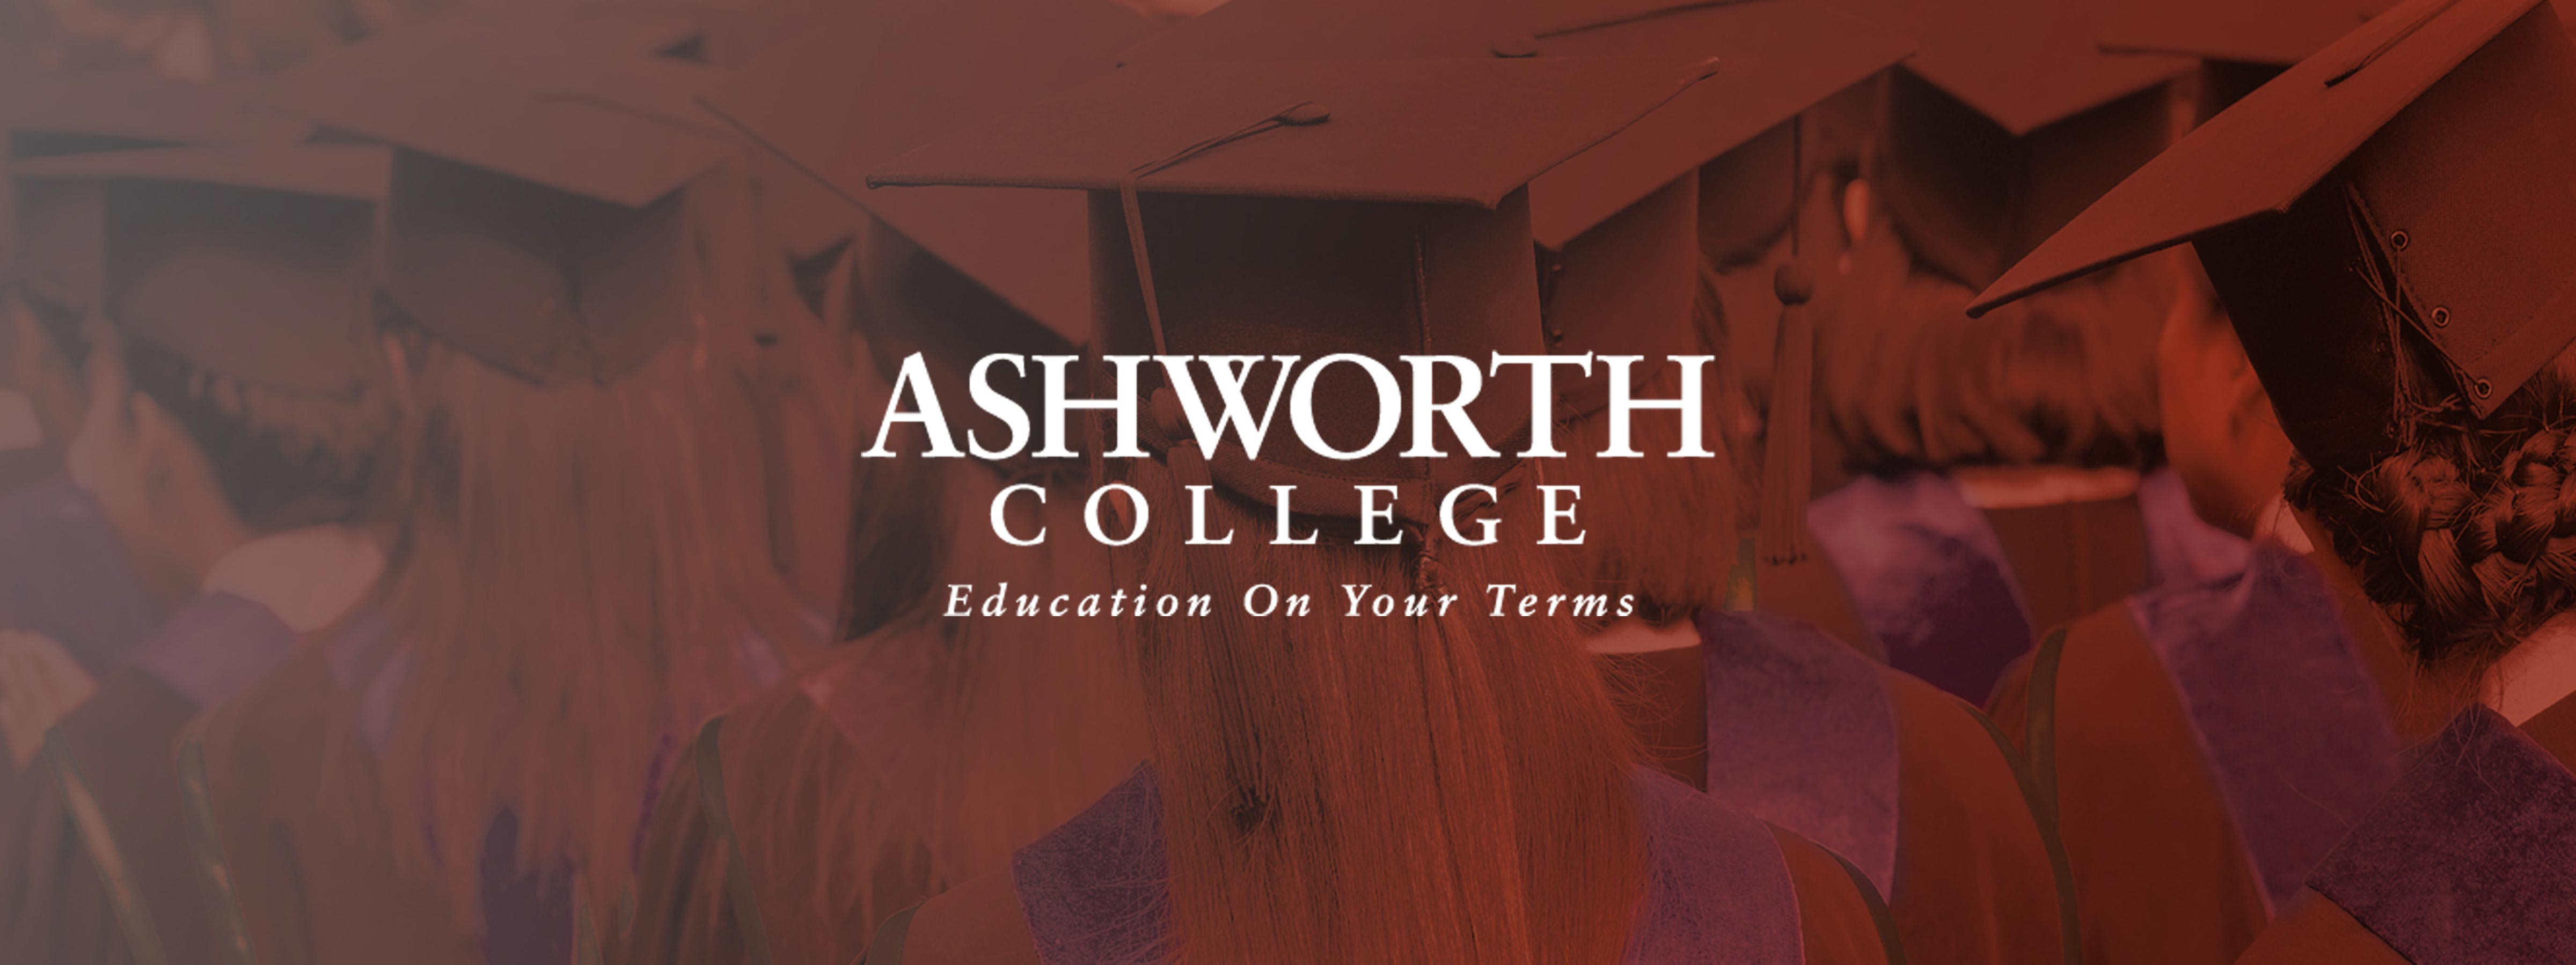 Ashworth Case Study